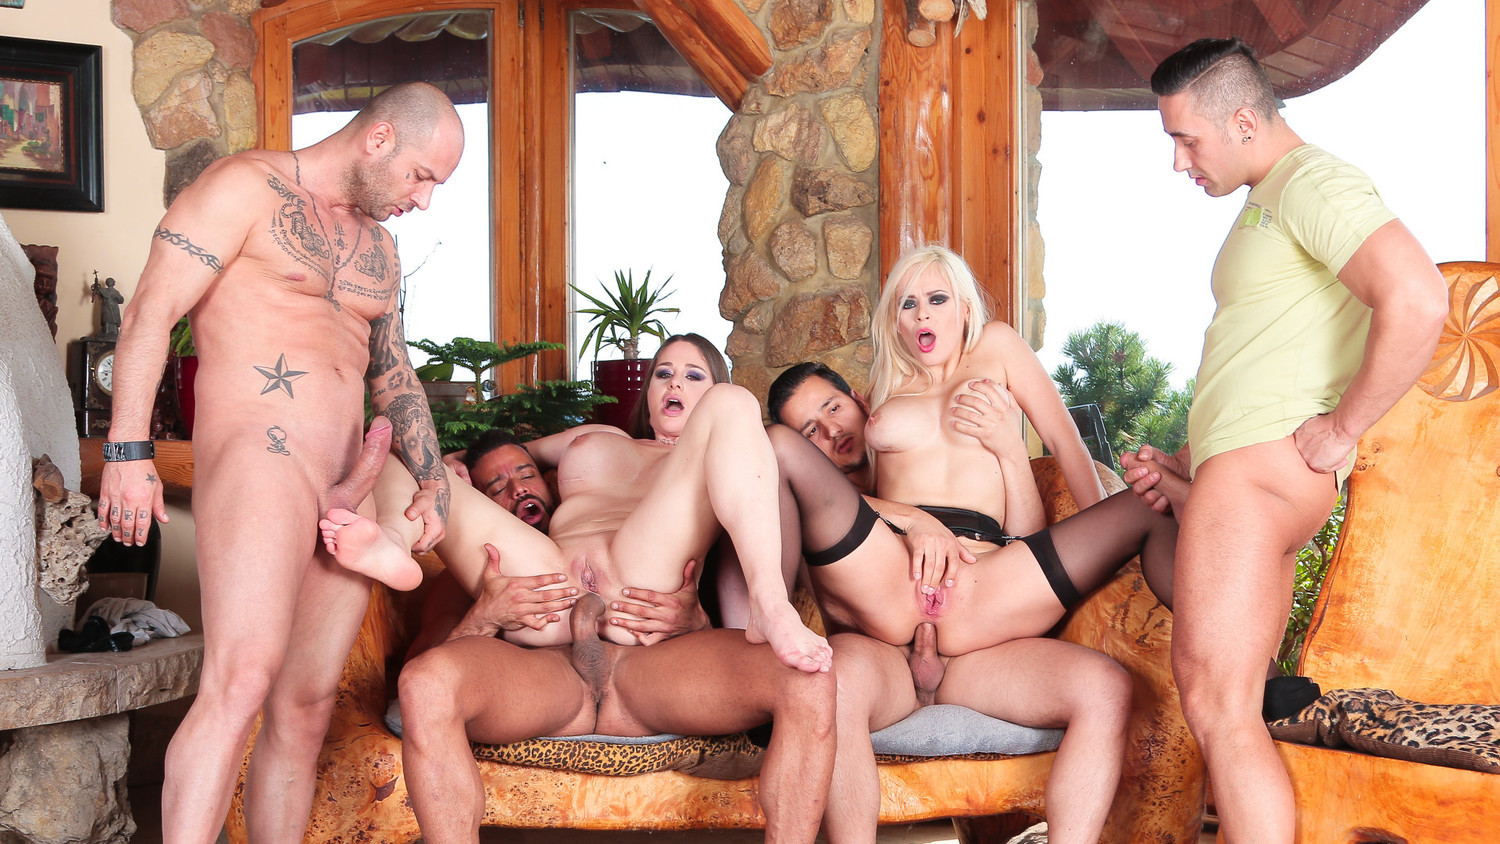 SLAM US – Hot gang bang with two busty MILFs